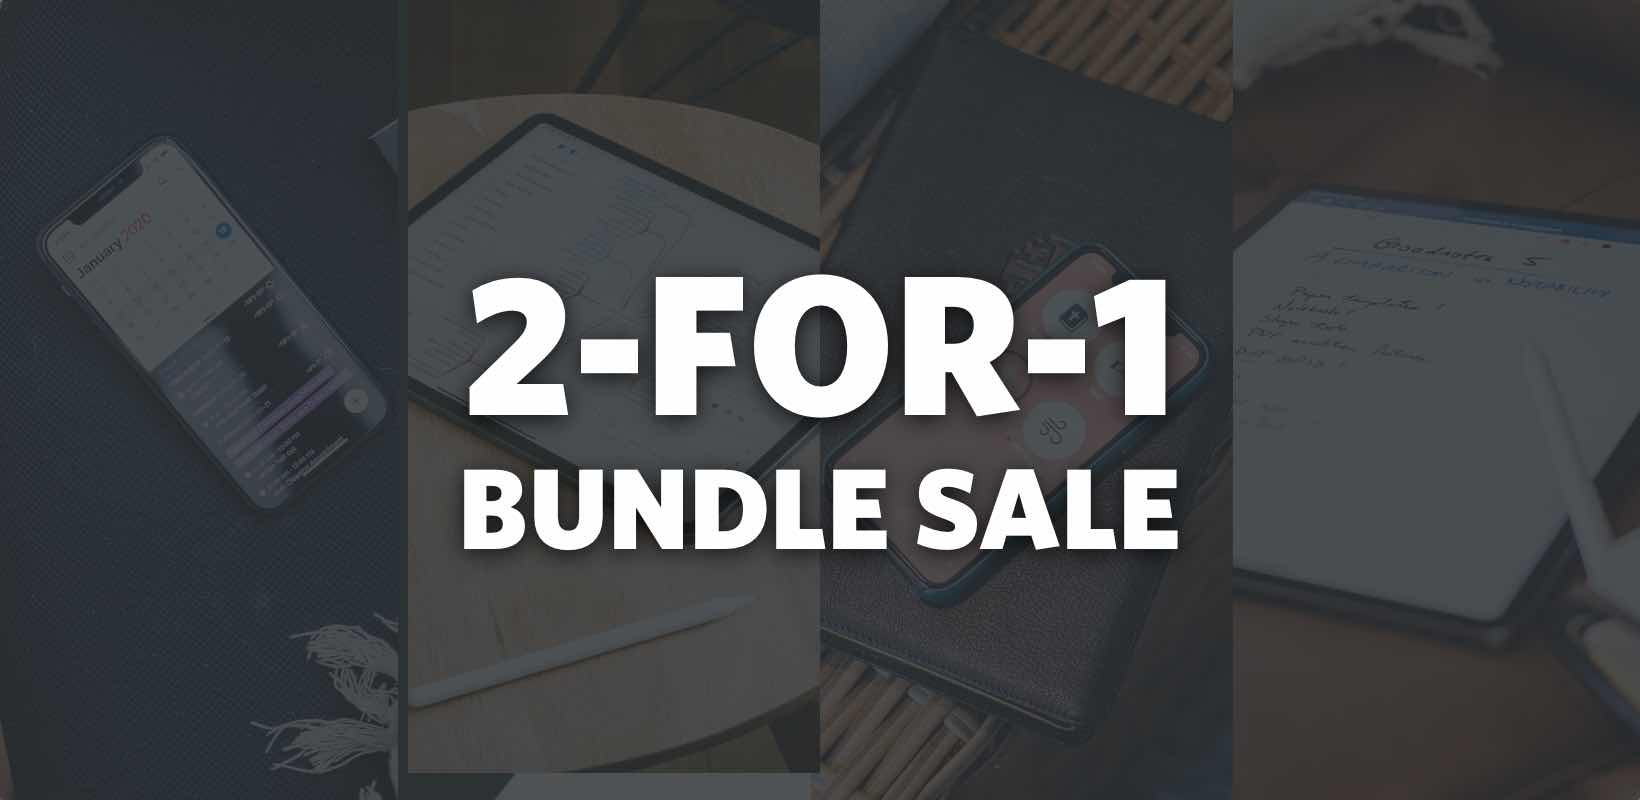 Two-for-one Bundle Sale